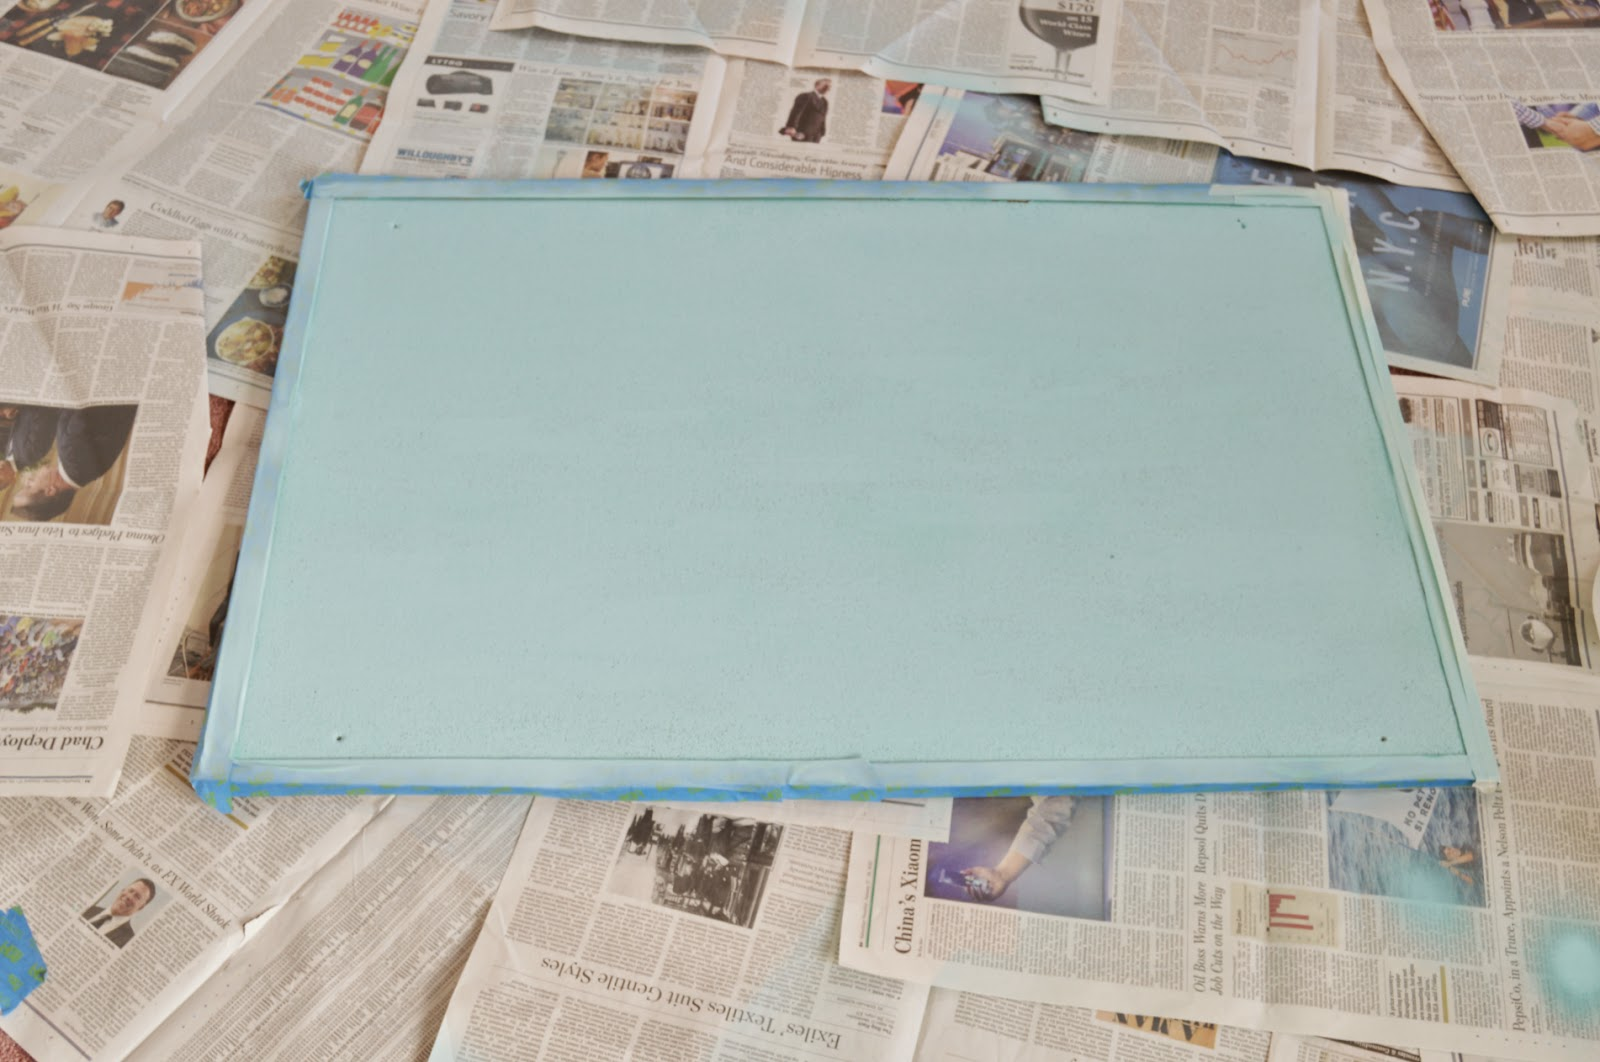 Step 1 Cover The Cork Board Frame If You Have One With Painter S Tape Or Masking And Spray Paint Color Of Your Choice